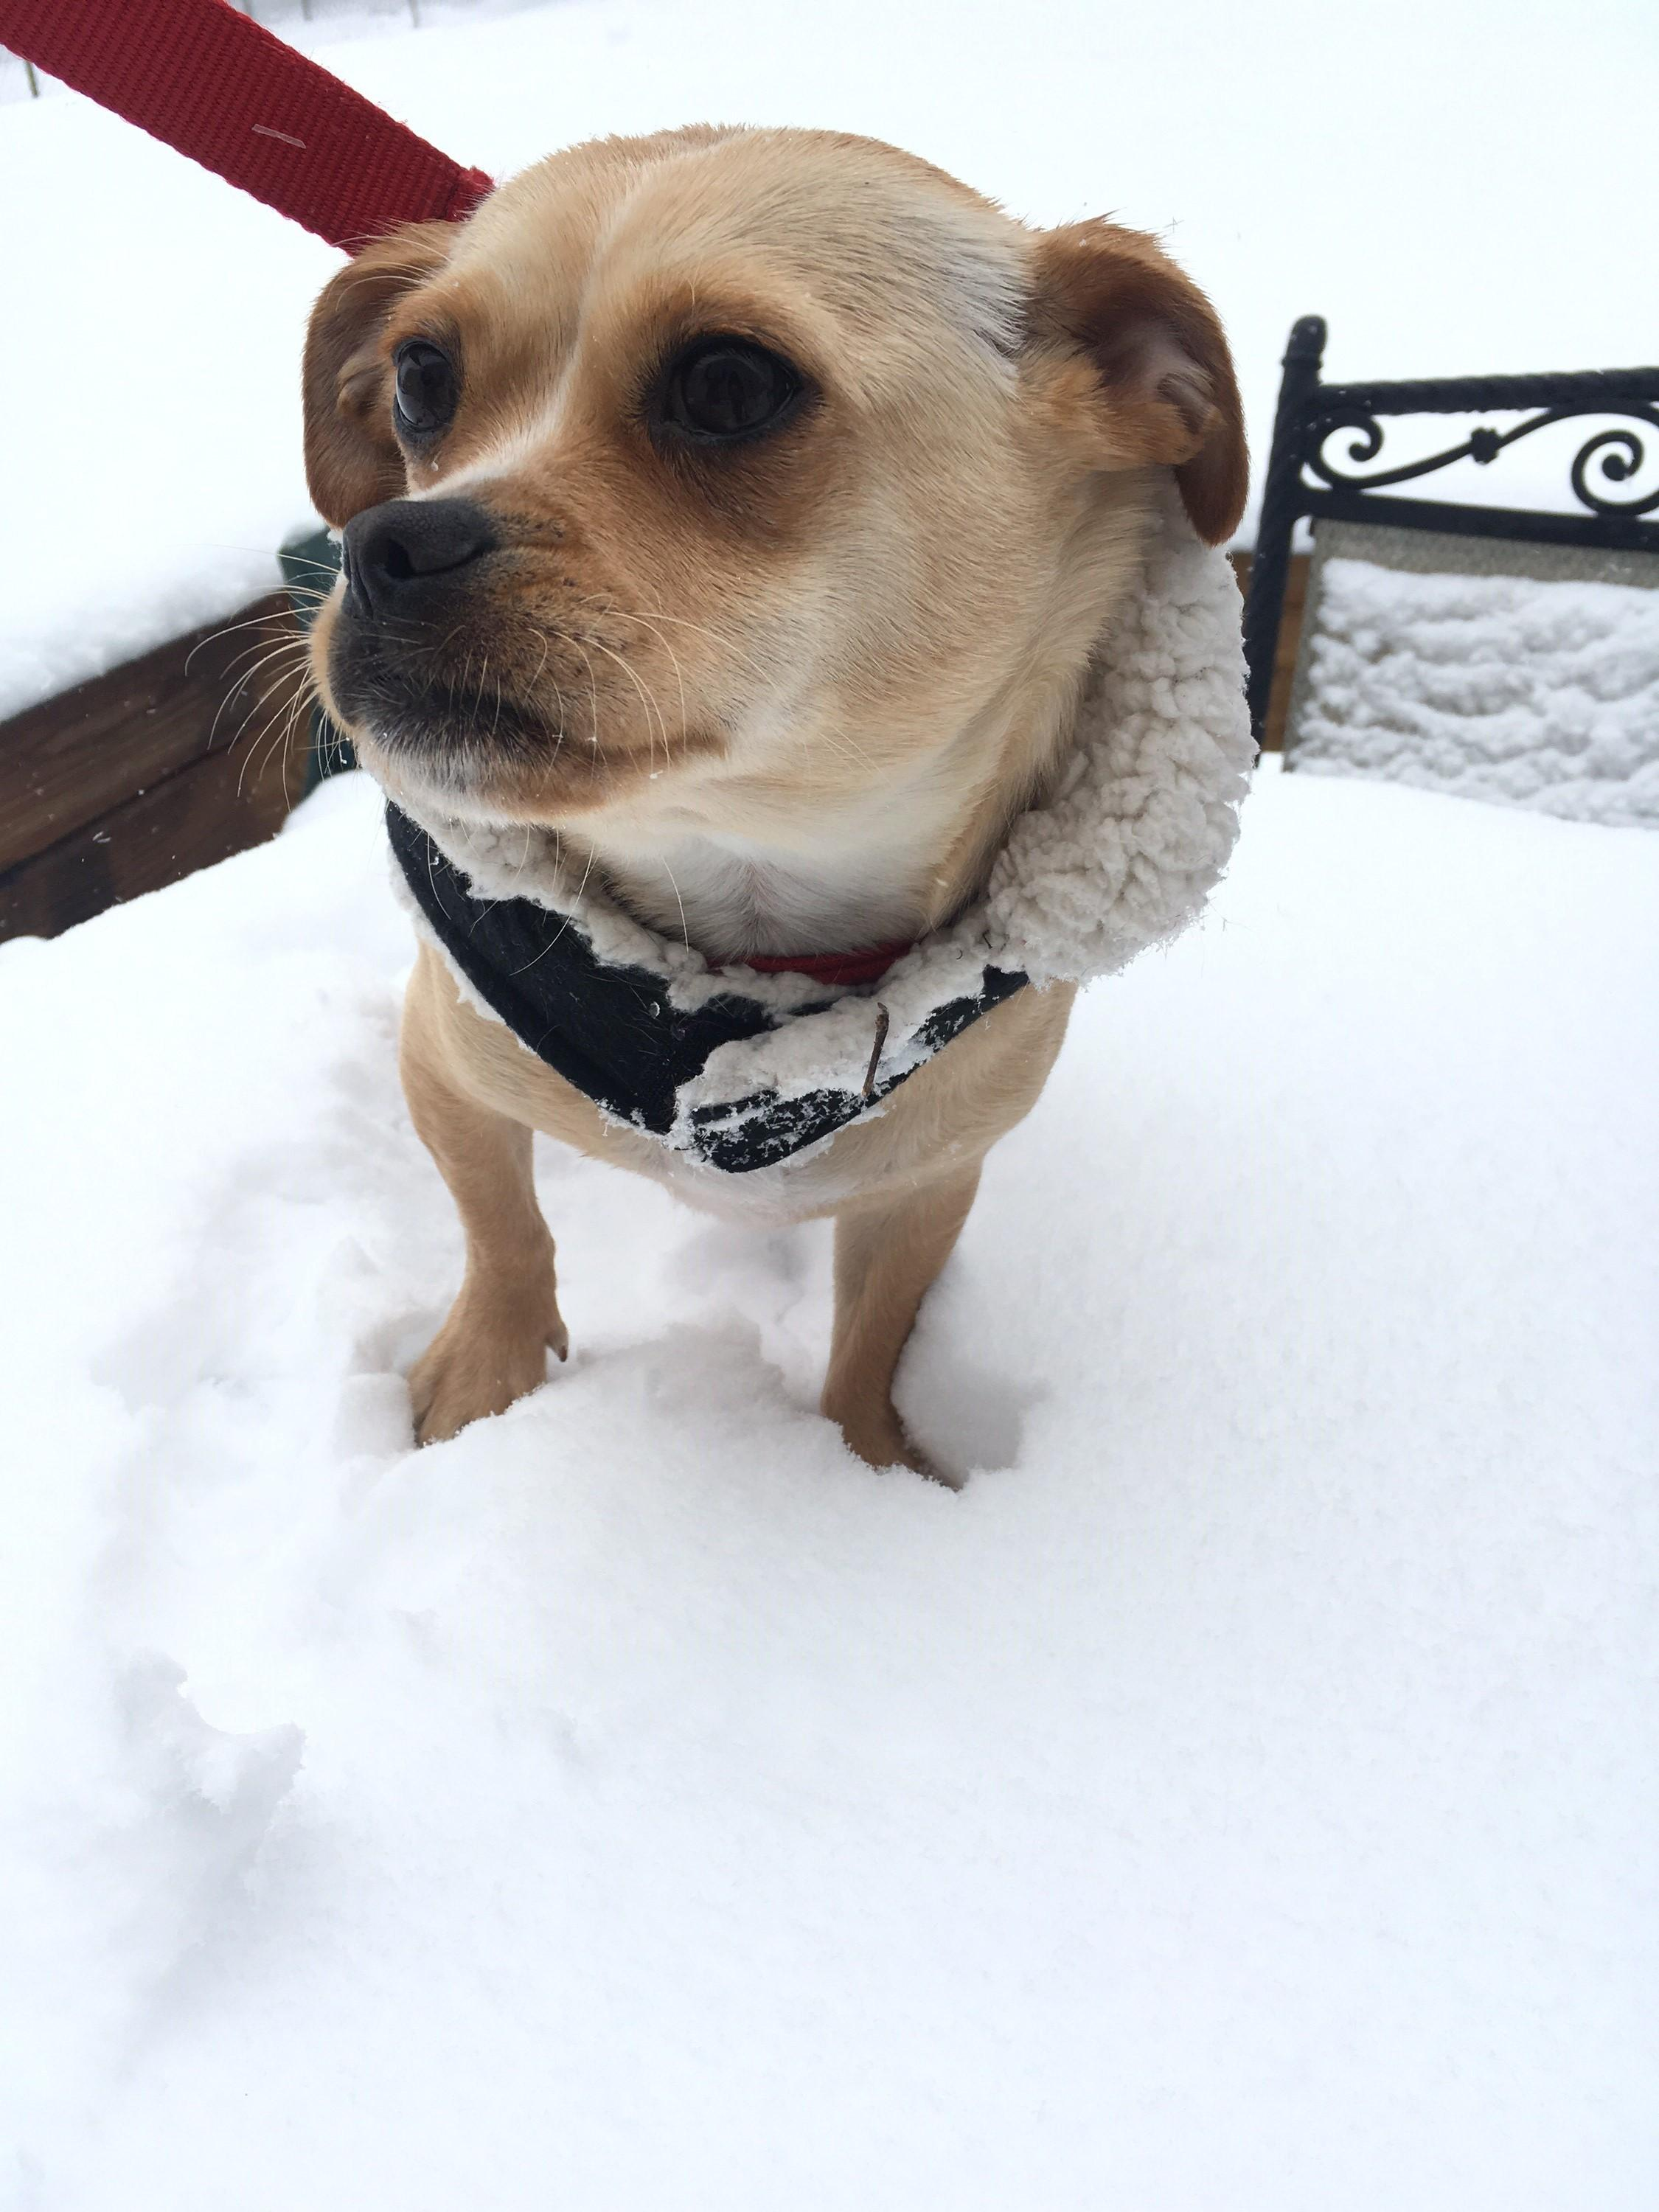 D.C. finally got its first real snowfall of the season -- on March 21! Given that it's the probably the only flakes we'll see for a while, the pups of the DMV decided to really live it up. Check out a few of the adorable pets we spotted chilling in the snow today!  (Image: Courtesy Deepica Singh)